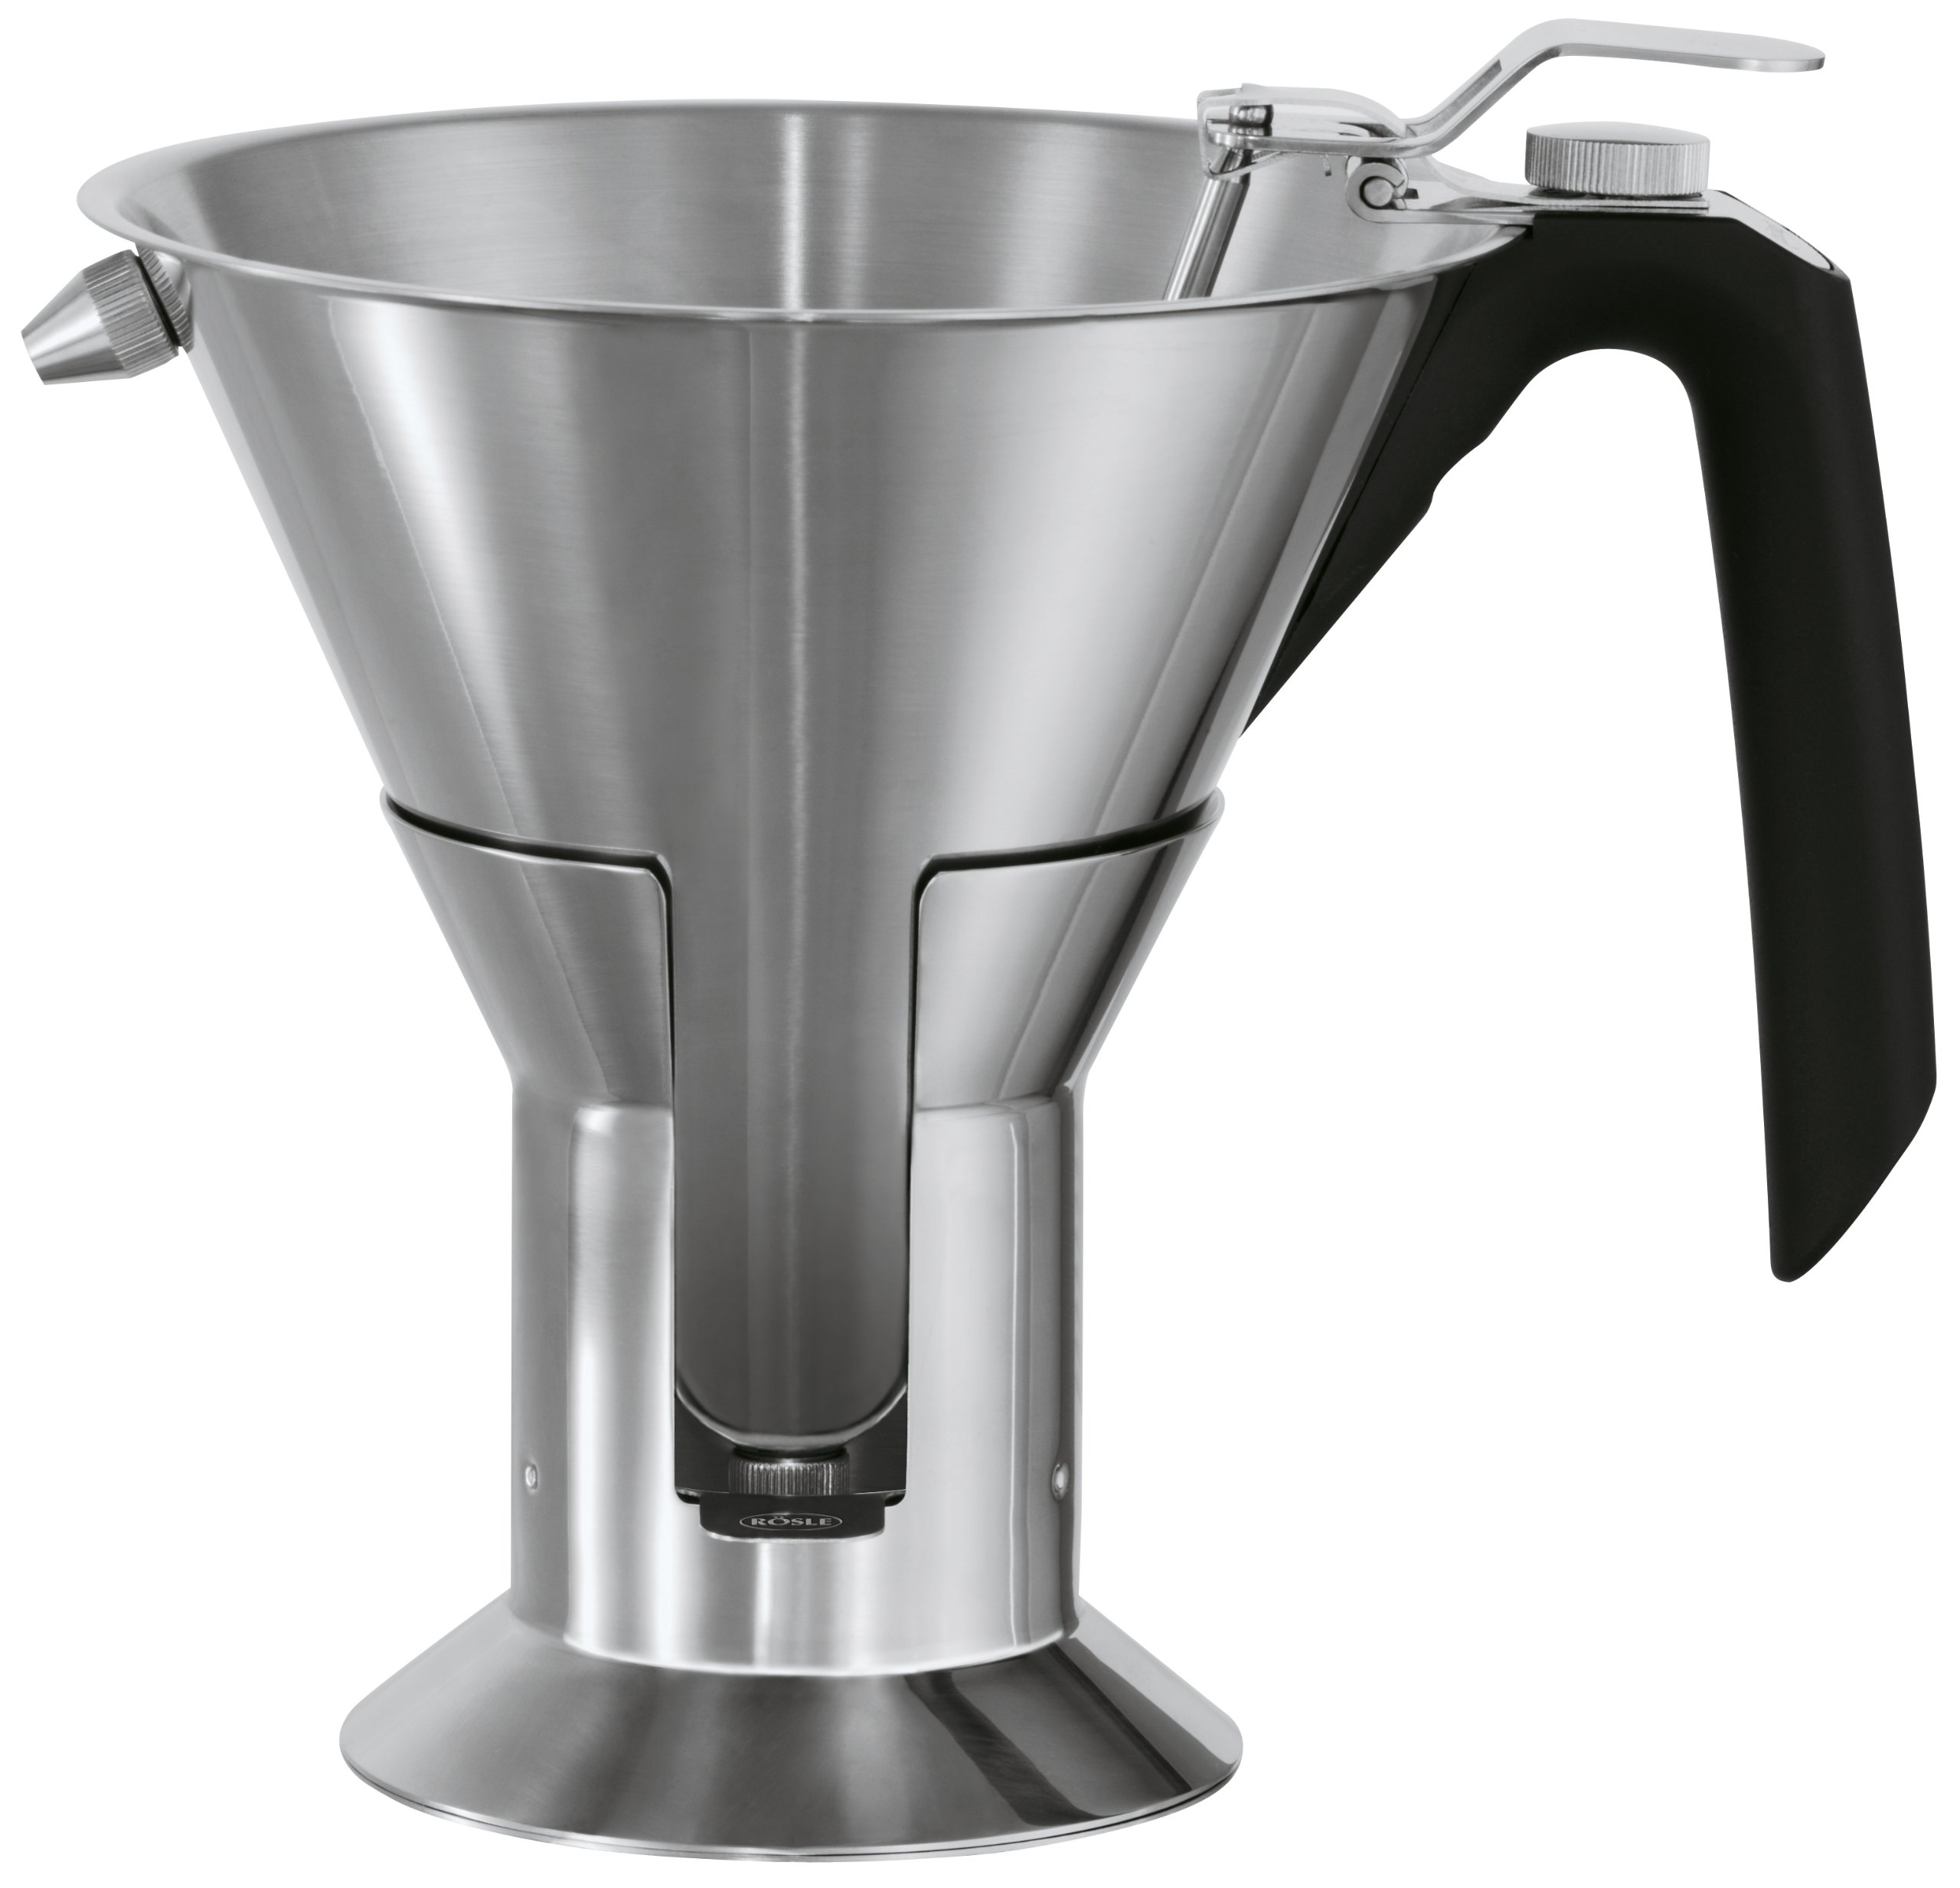 Rösle Stainless Steel Confectionary Funnel with Silicone Handle